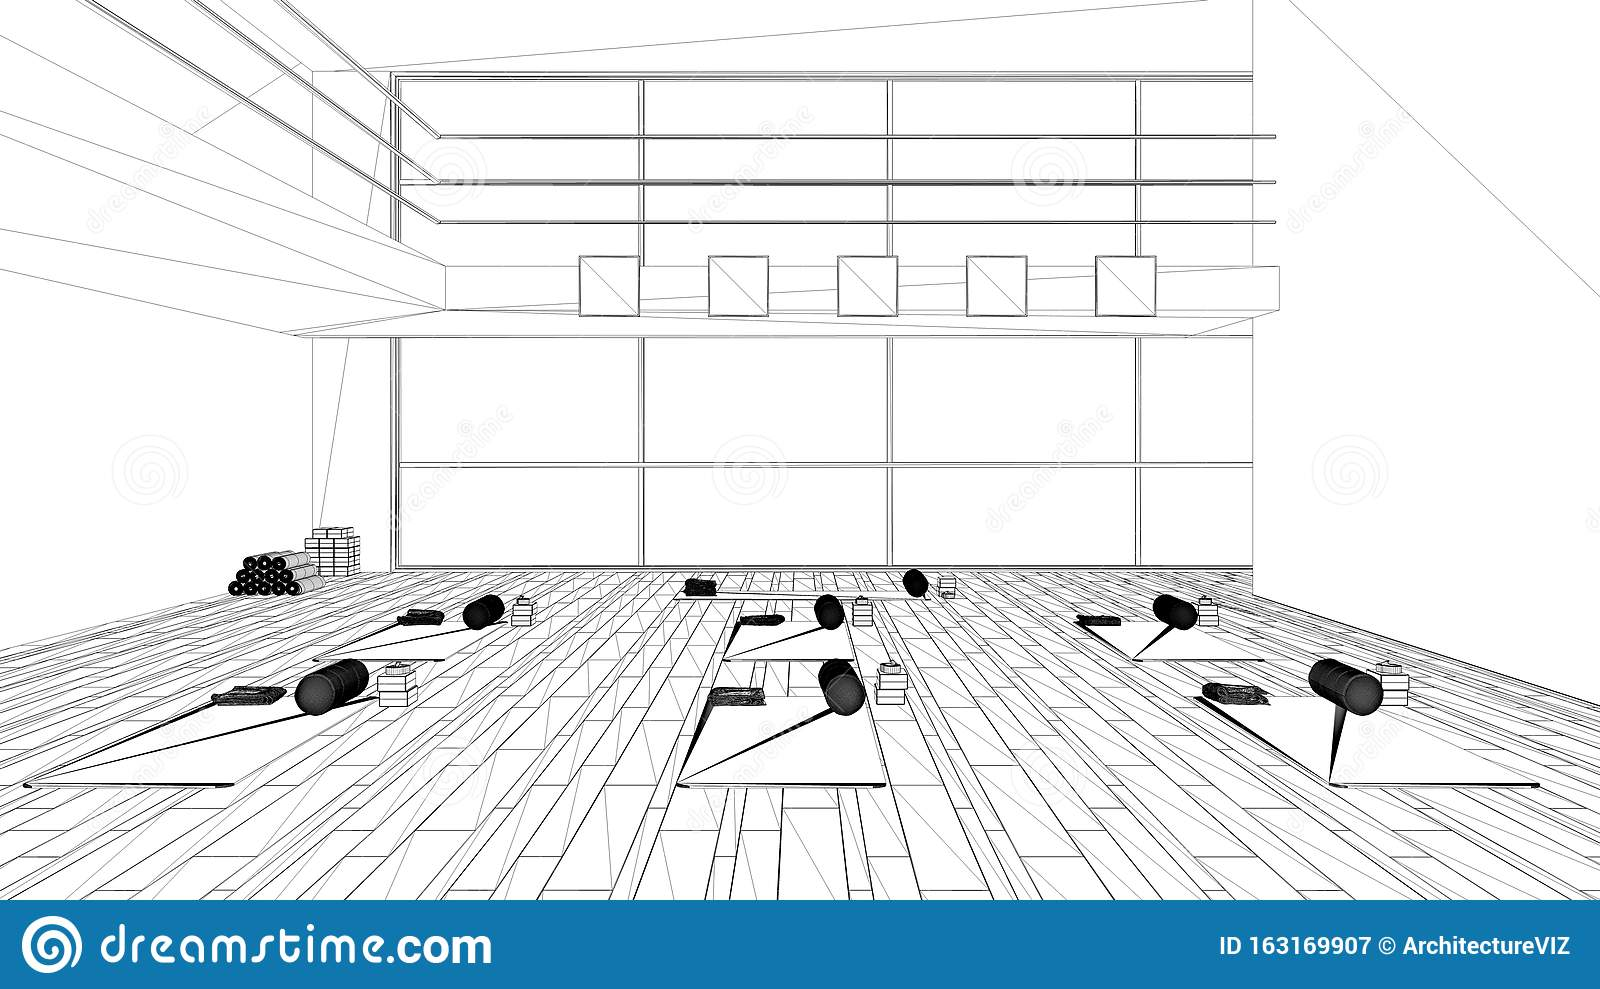 Blueprint Project Draft Empty Yoga Studio Interior Design Architecture Minimal Open Space Spatial Organization With Mats And Stock Illustration Illustration Of Construction Idea 163169907